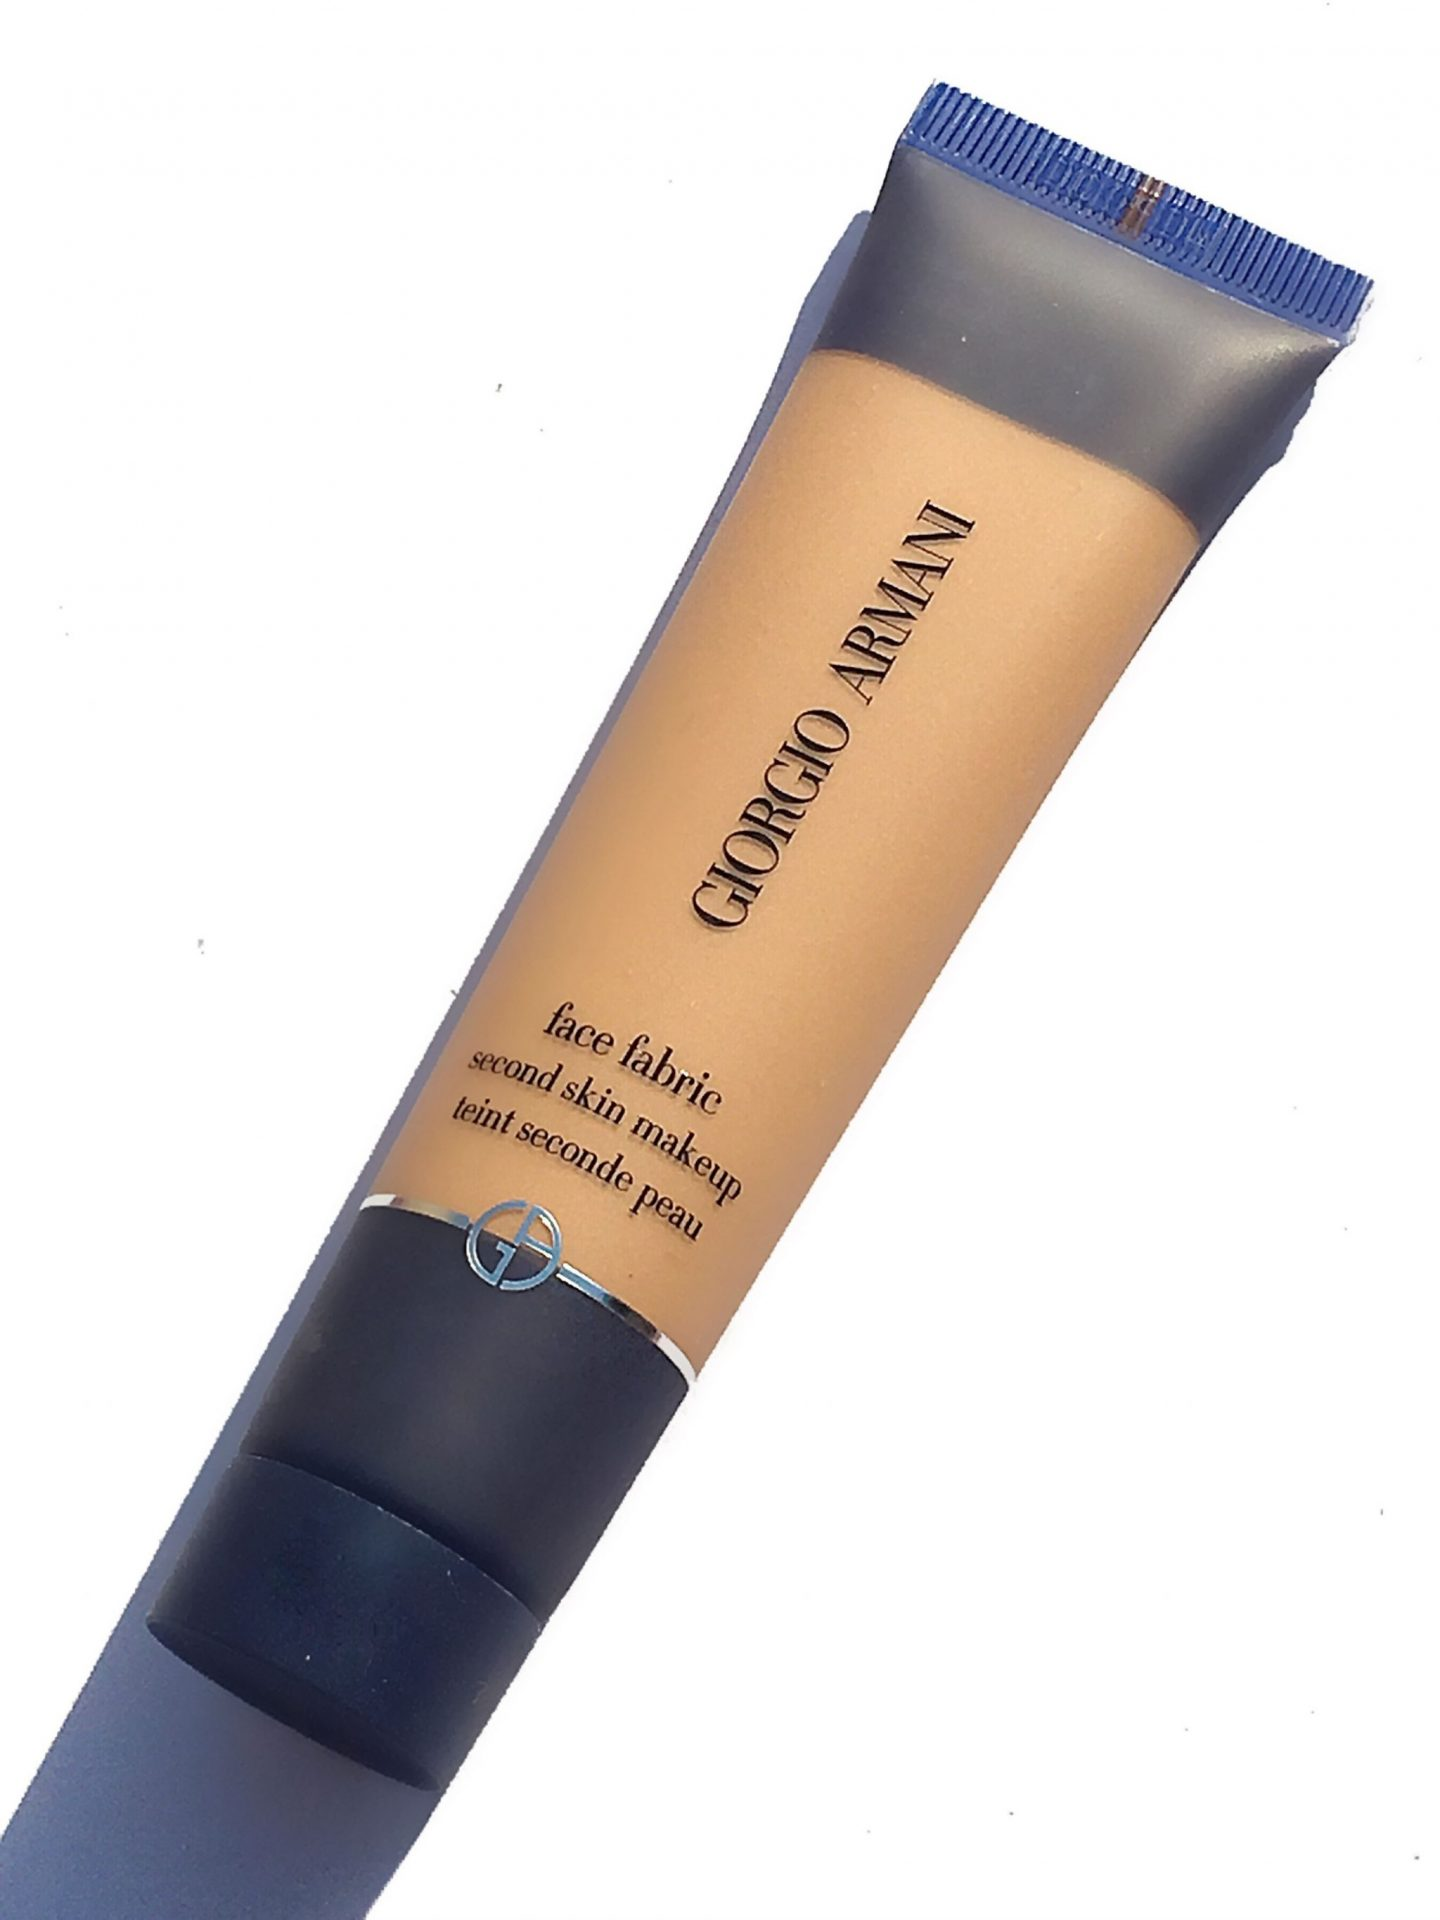 Giorgio Armani Face Fabric Foundation Review, Swatches & Favorites